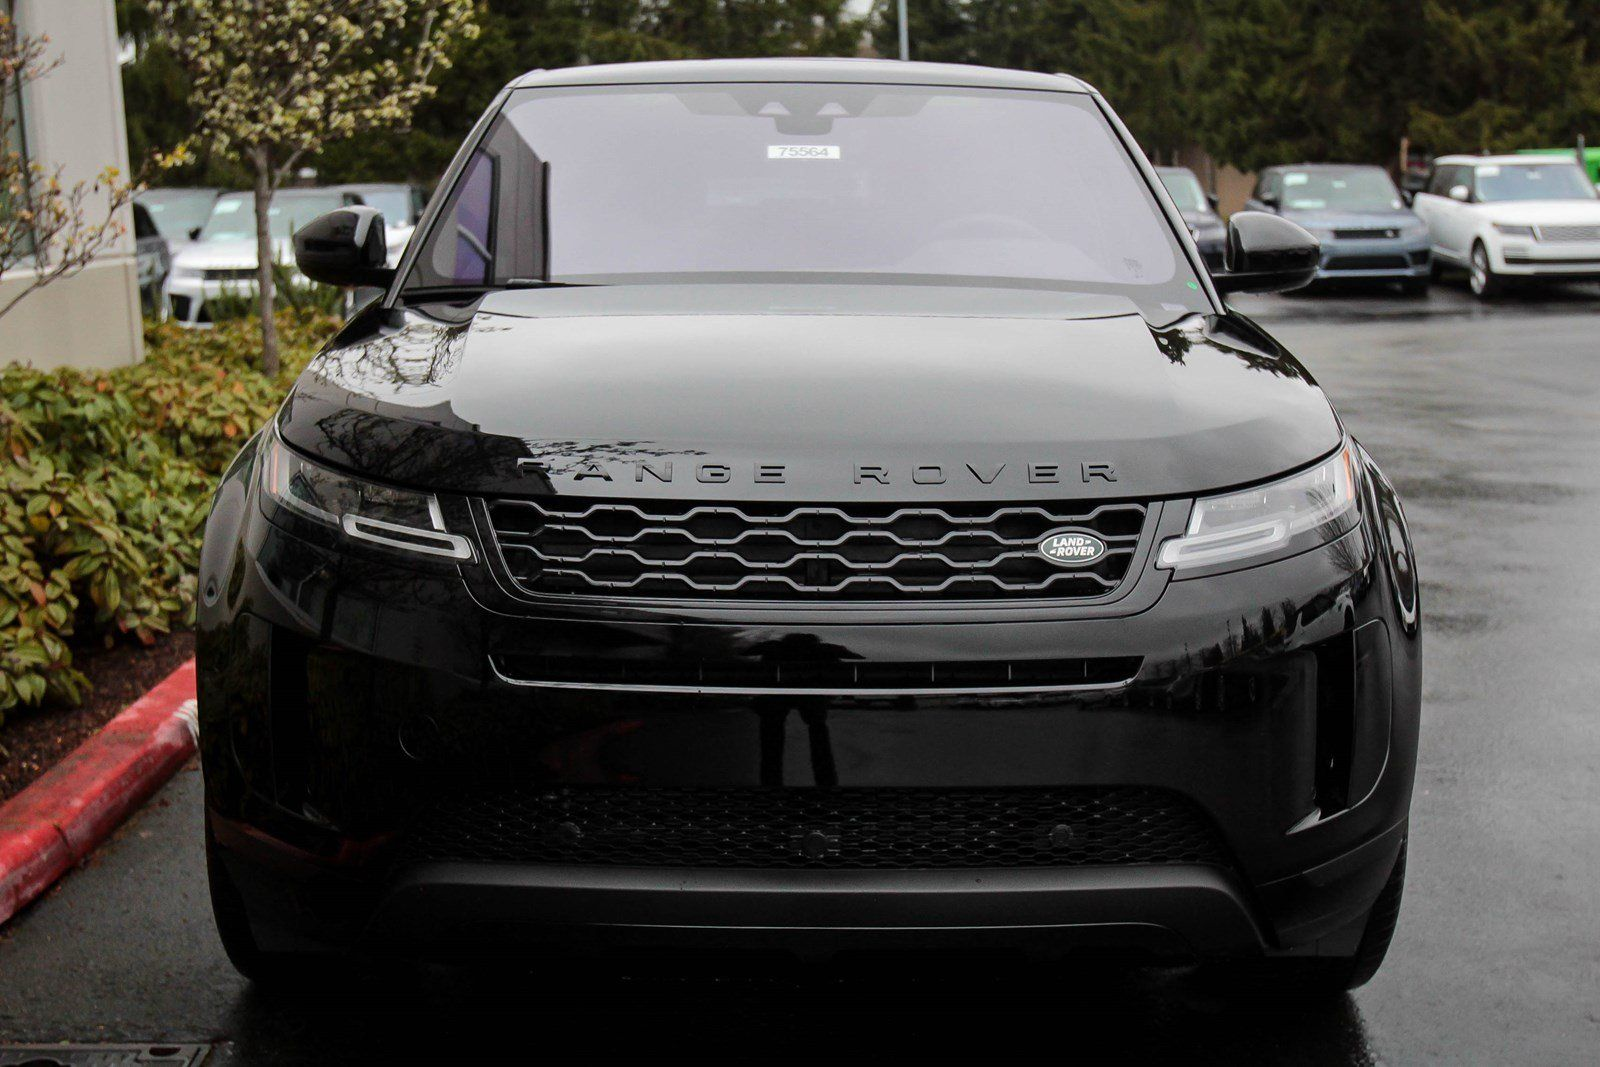 80 New SUVs in Stock Edmonds Land Rover Seattle in